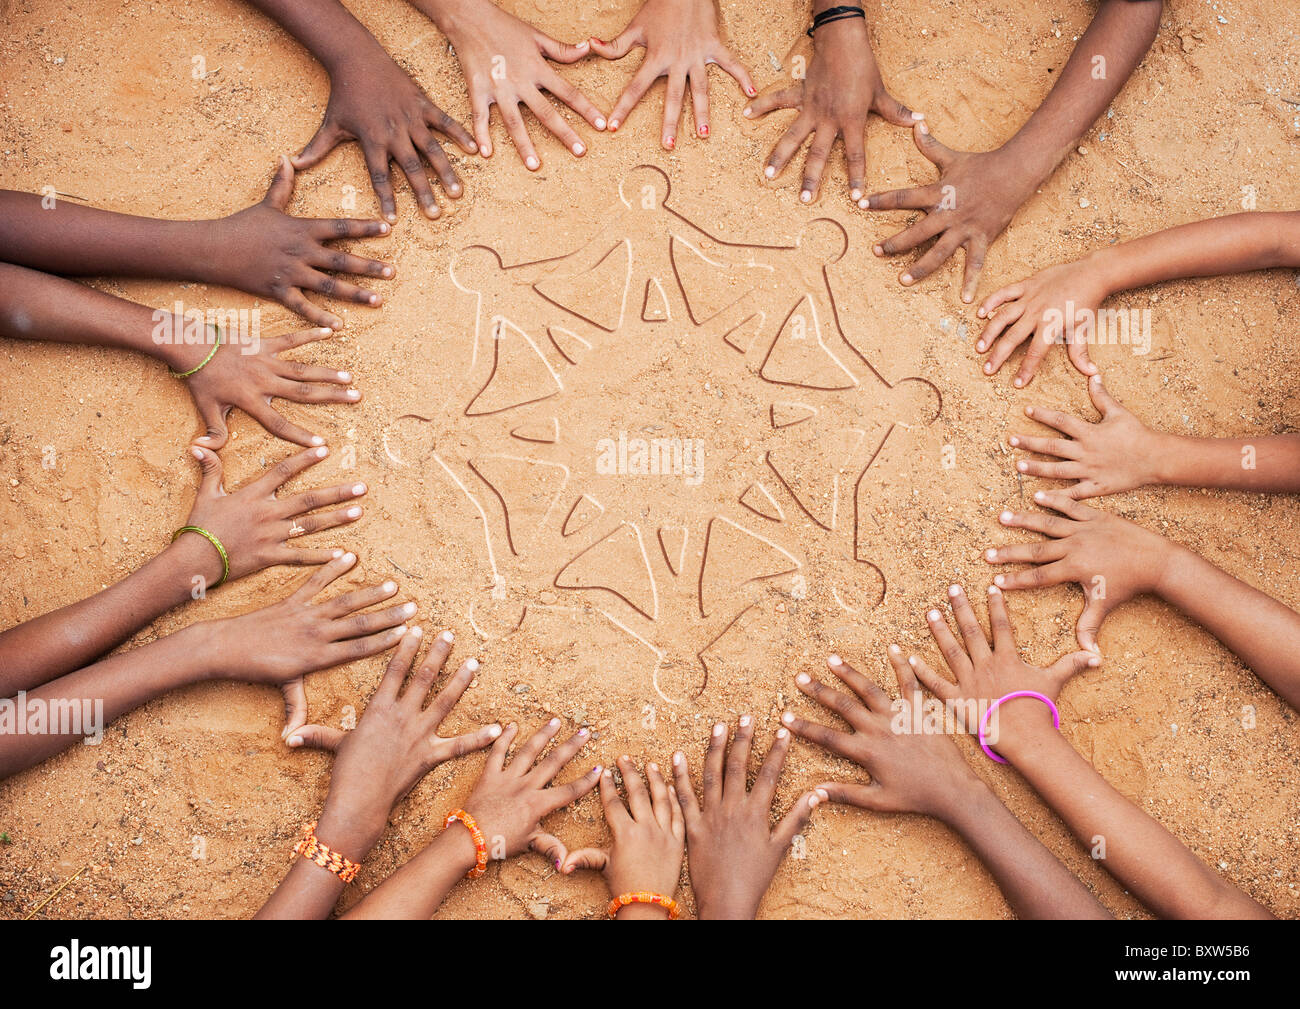 Children's hands forming a circle with a one world symbol in the middle. India - Stock Image